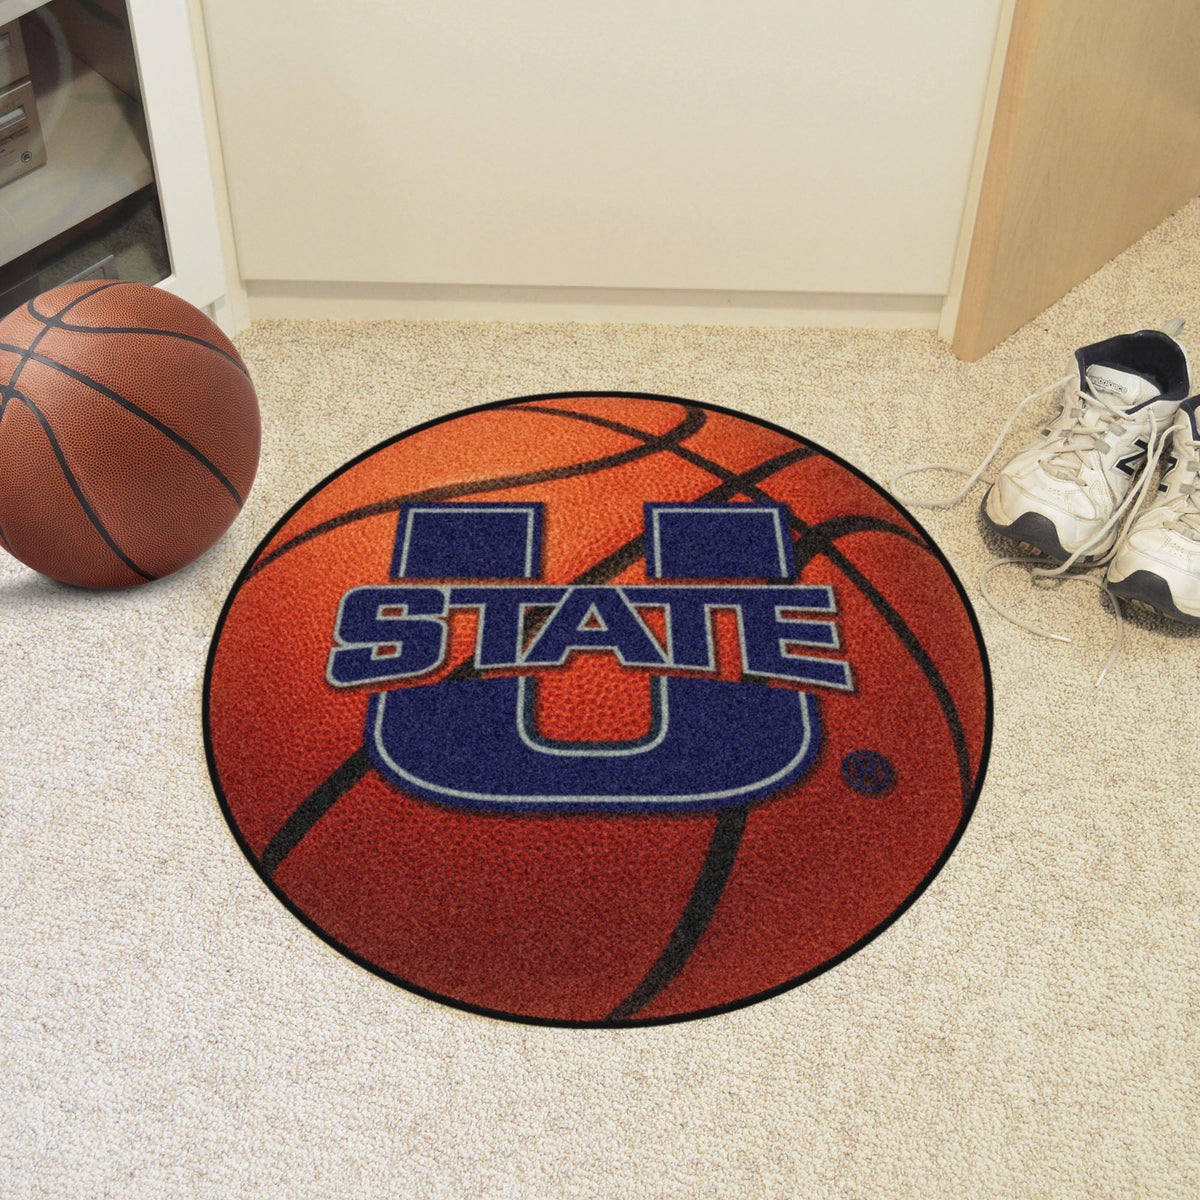 Collegiate - Basketball Mat: T - Z Collegiate Mats, Rectangular Mats, Basketball Mat, Collegiate, Home Fan Mats Utah State